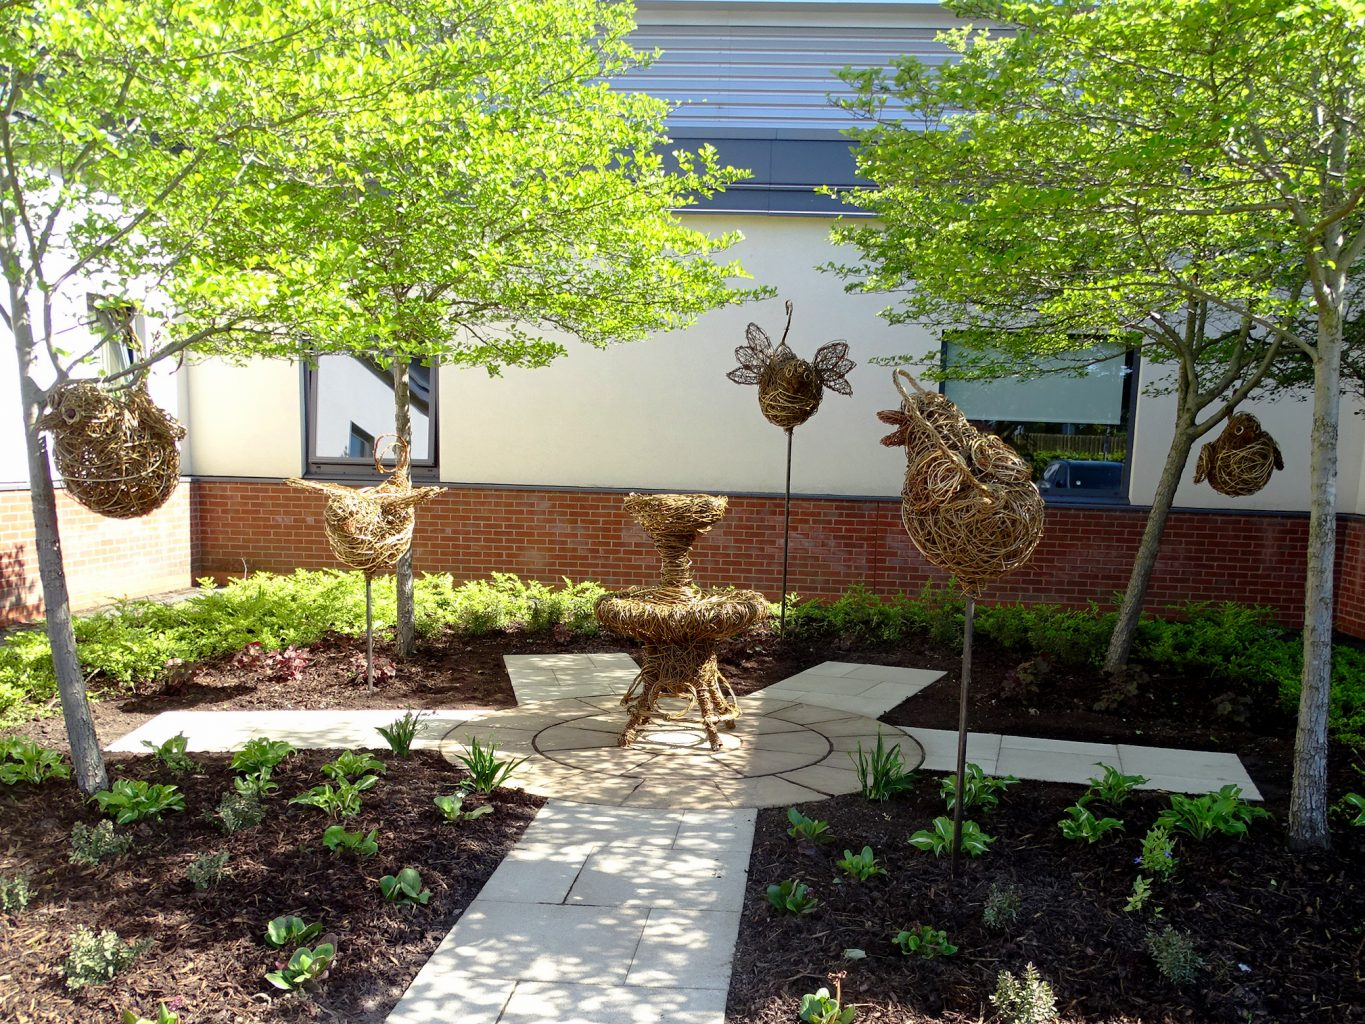 Working with Spa Landscaping to create a healing garden